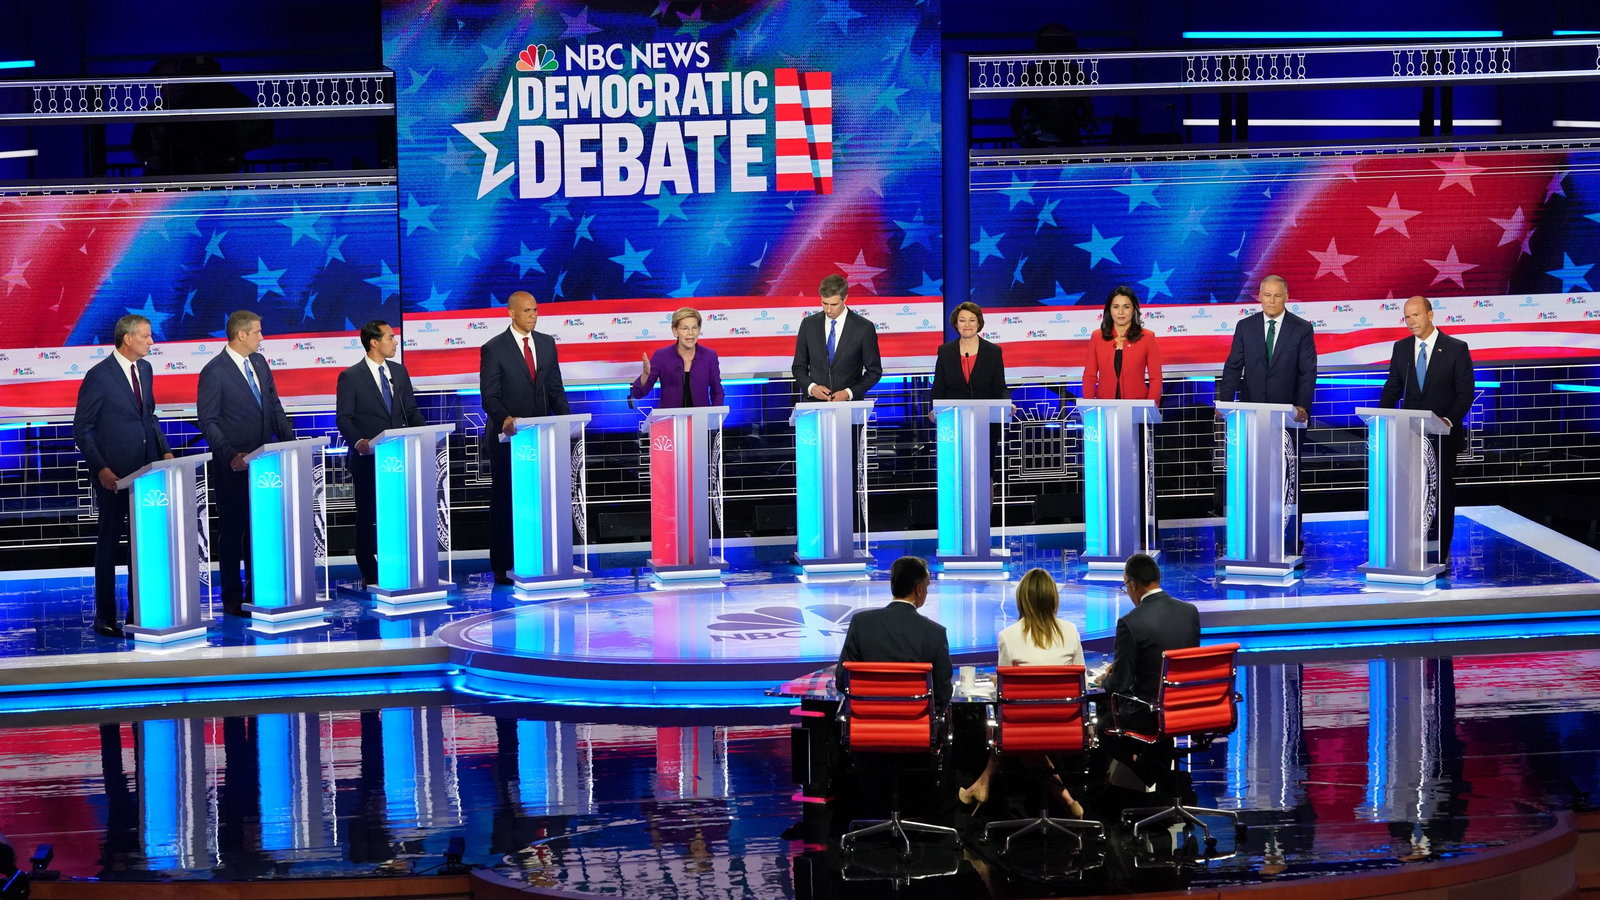 Democratic Debate Live Updates If Elected What Would